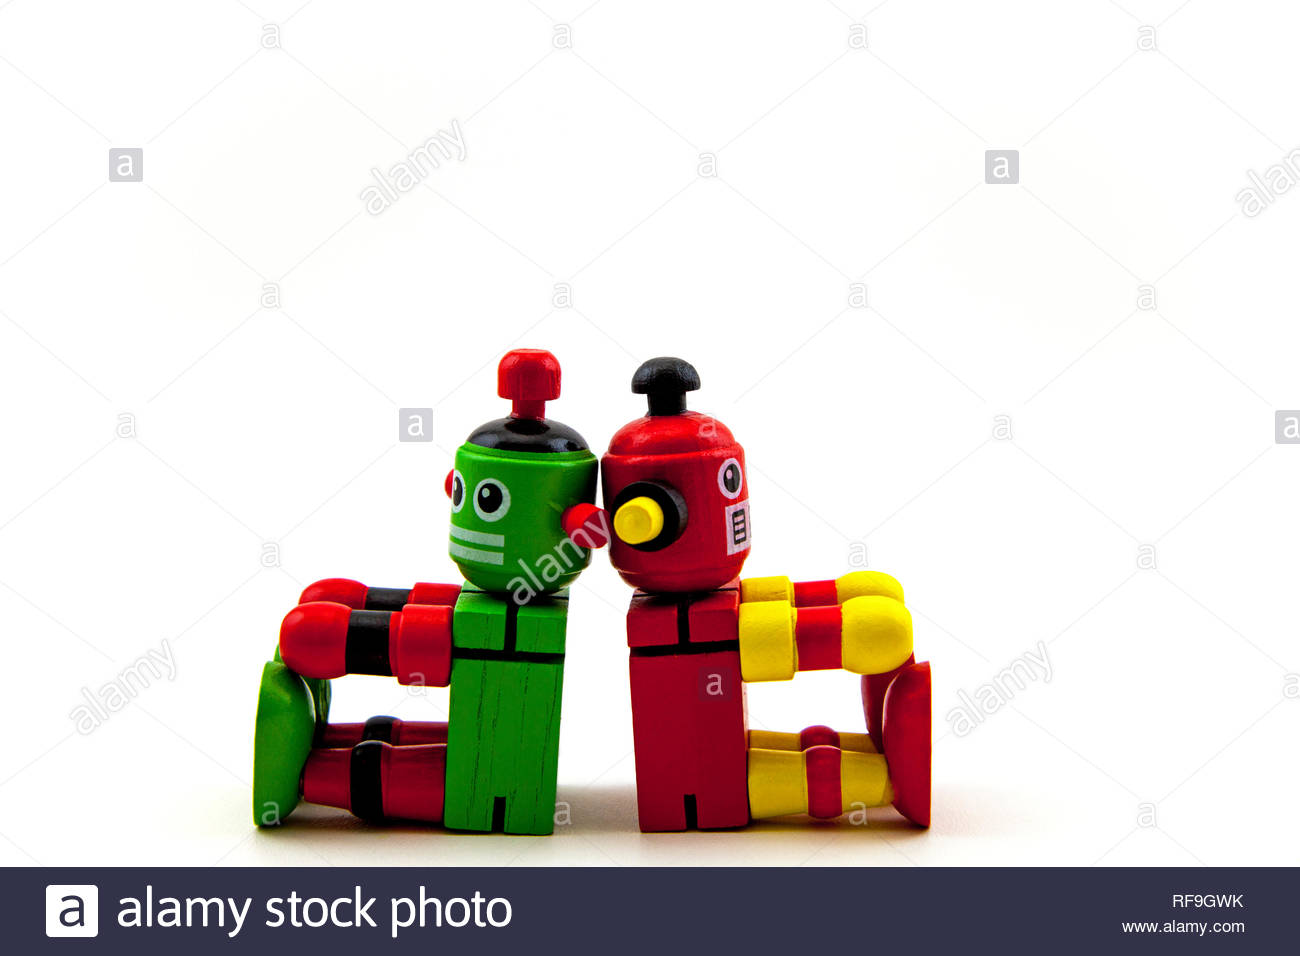 2 wooden toy robots, red / yellow & green / red, sitting back to back. Copy space on a white background. Concepts: no communication, argument, apart - Stock Image